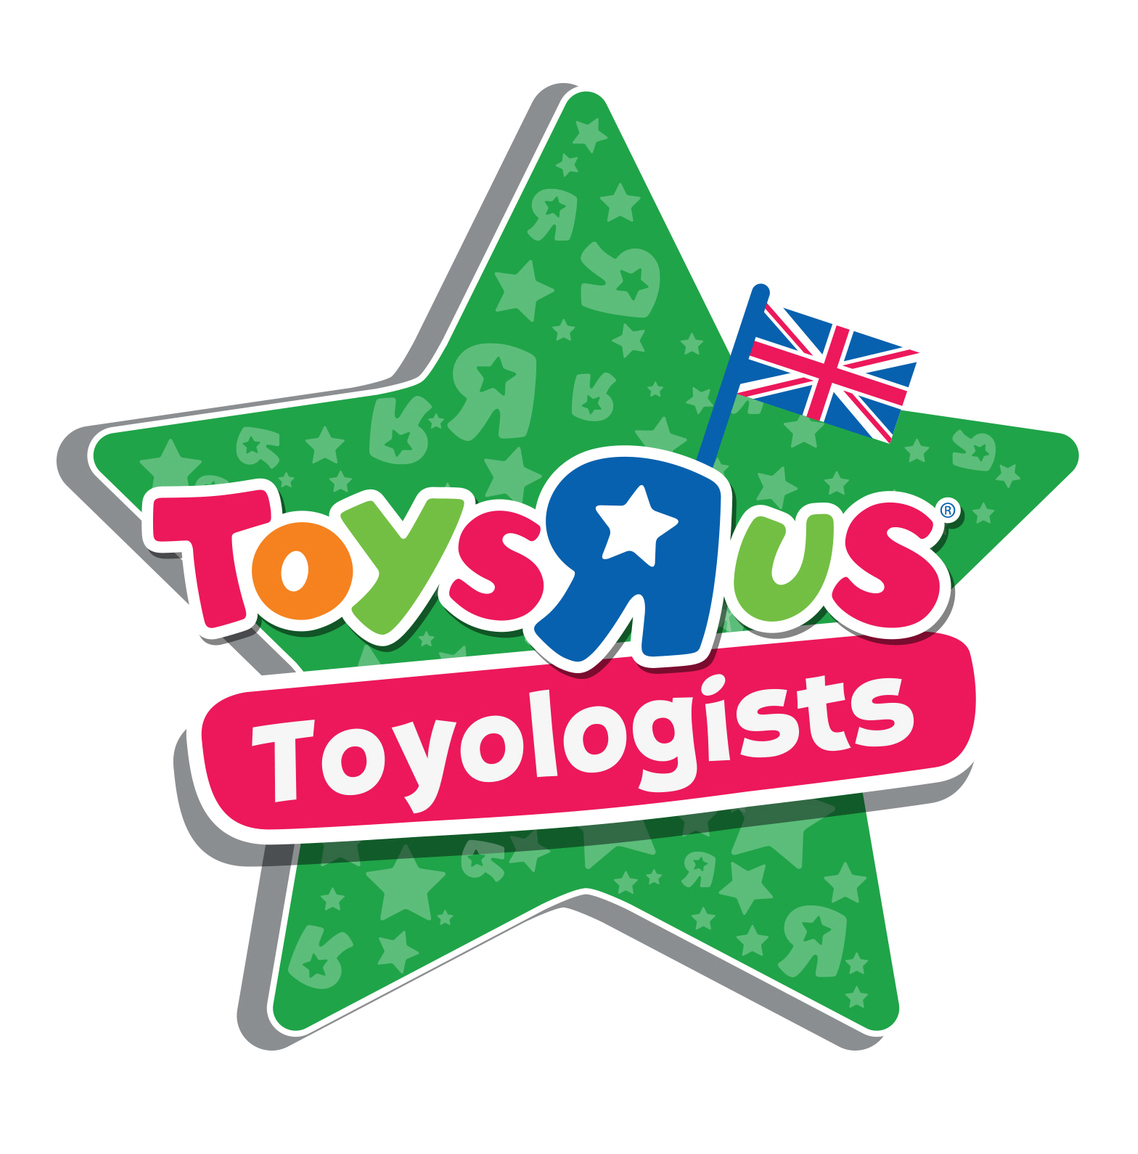 Man vs. Pink Dad Blogger ToysRUs #Toyologist